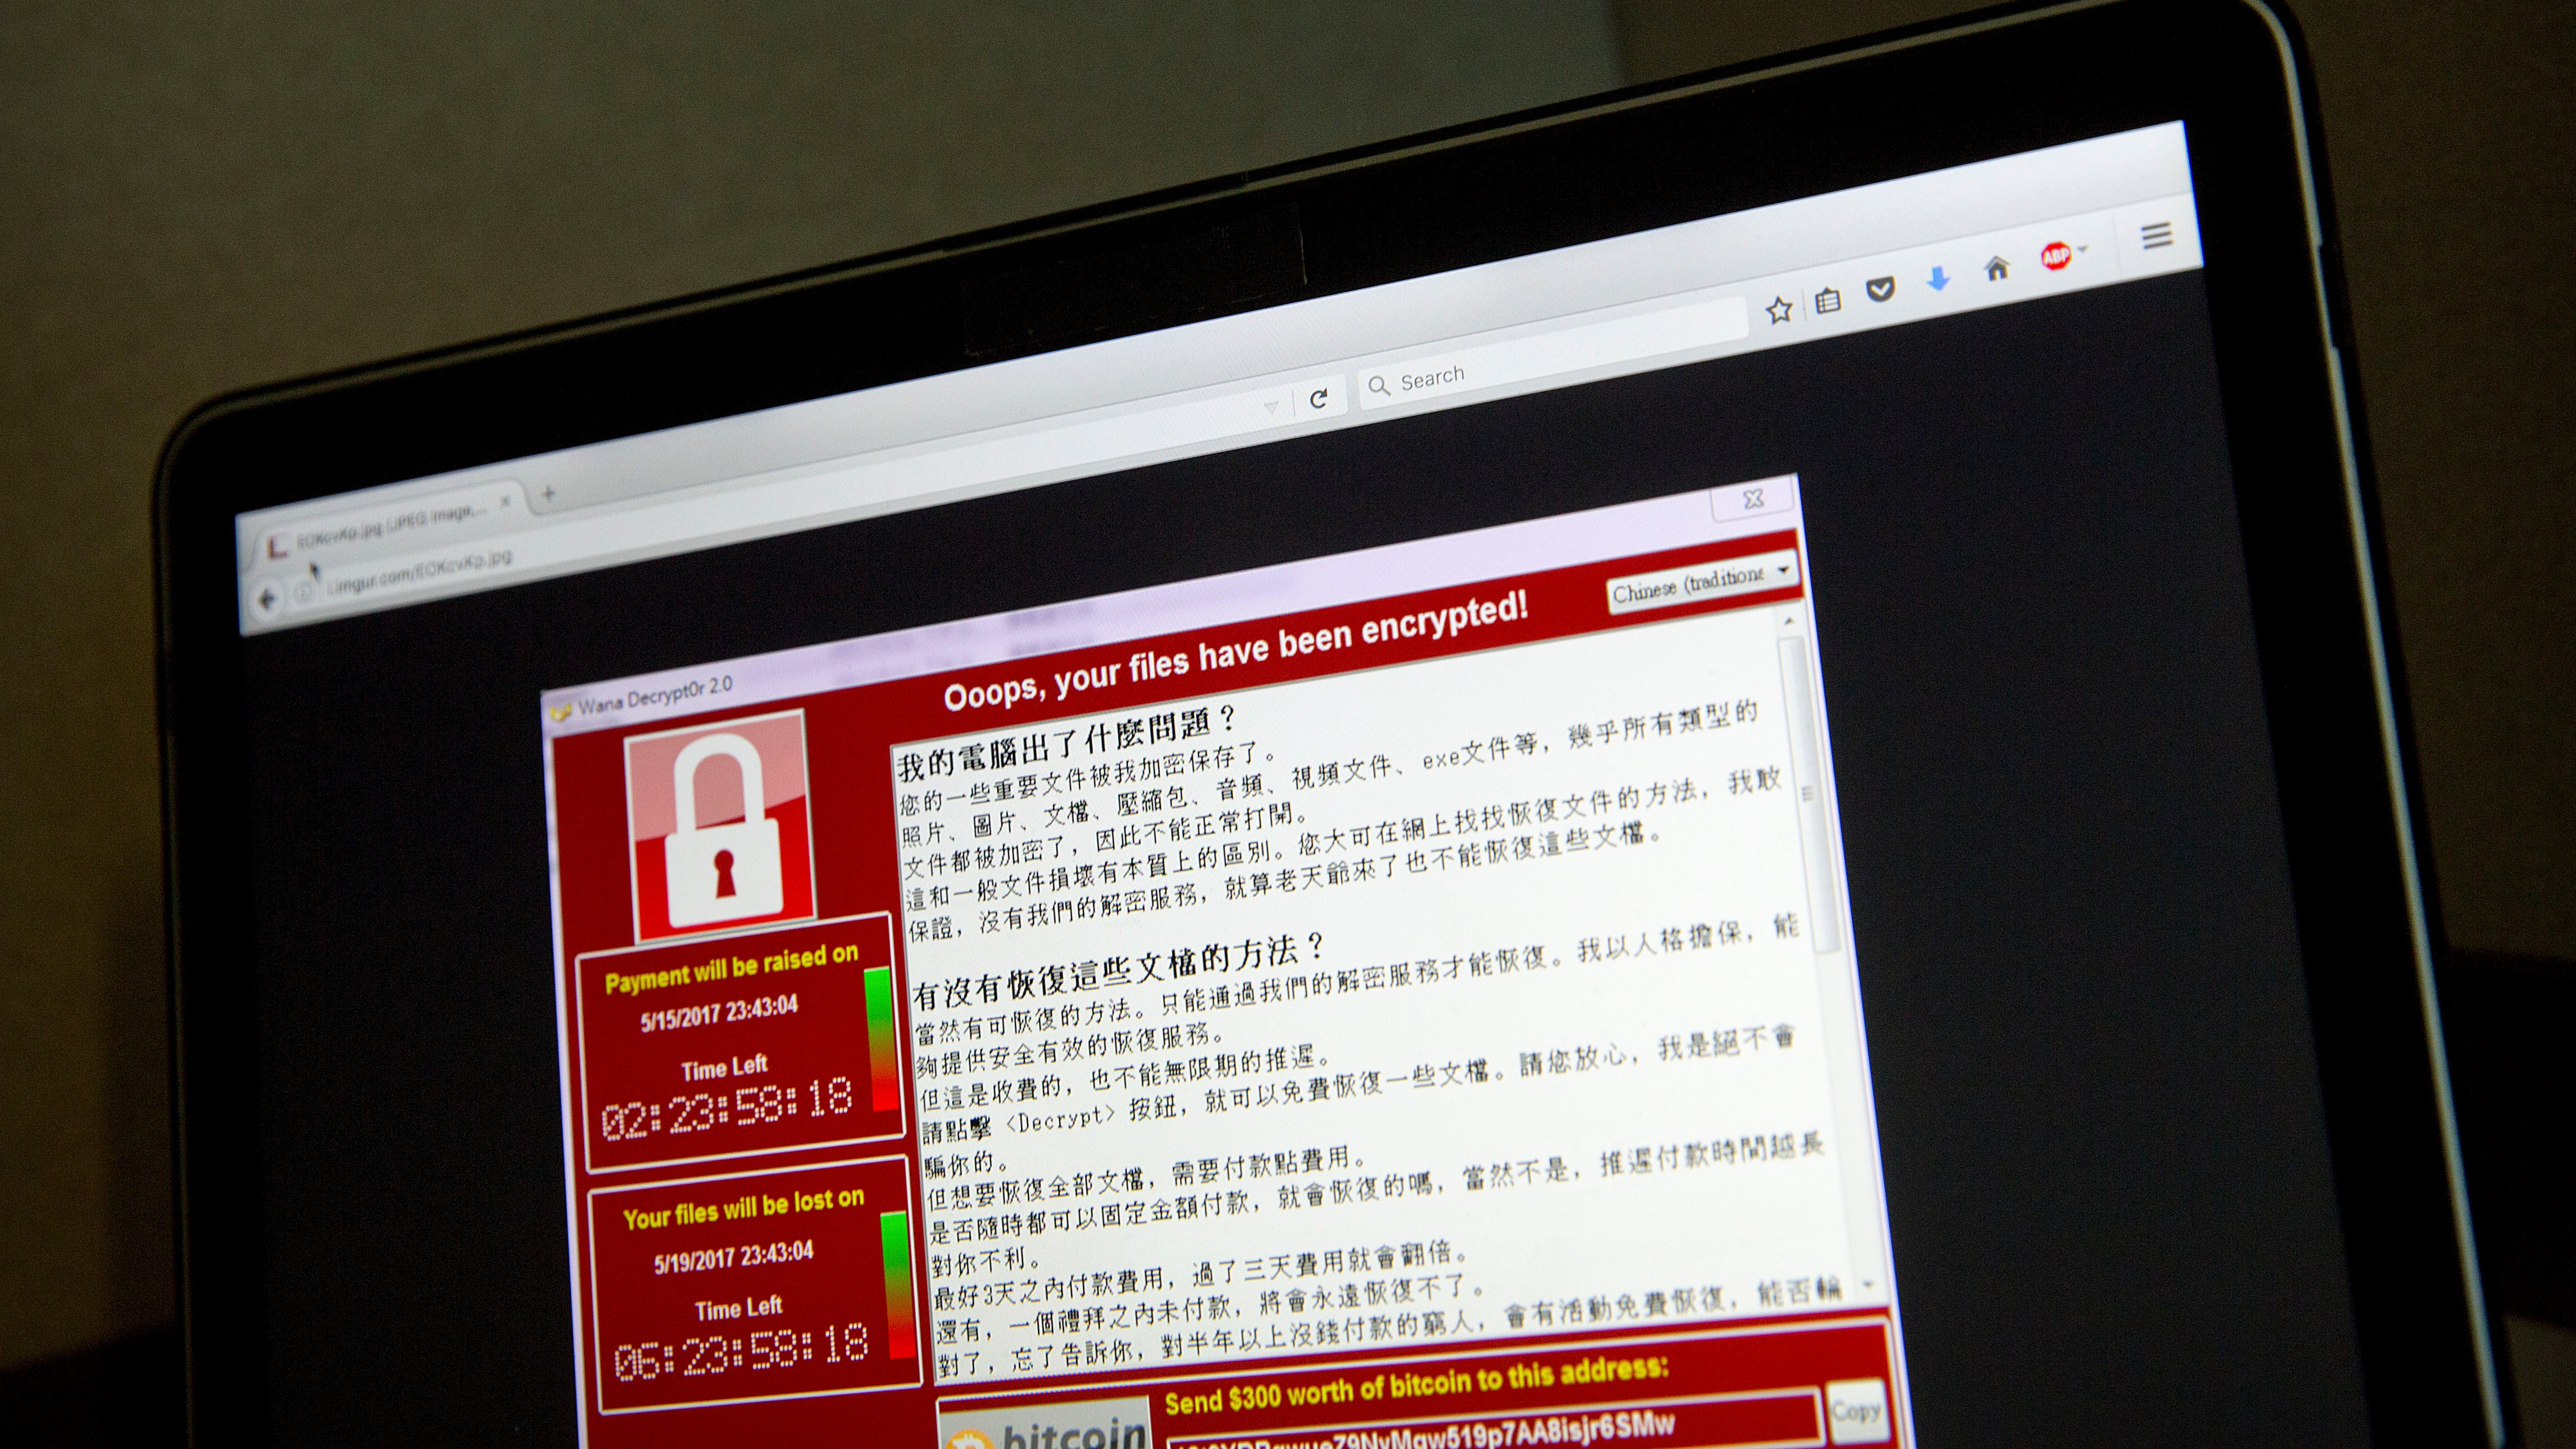 Rise In Ransomware Attacks Actually Led To Fewer Exposed Records, IBM Discovers